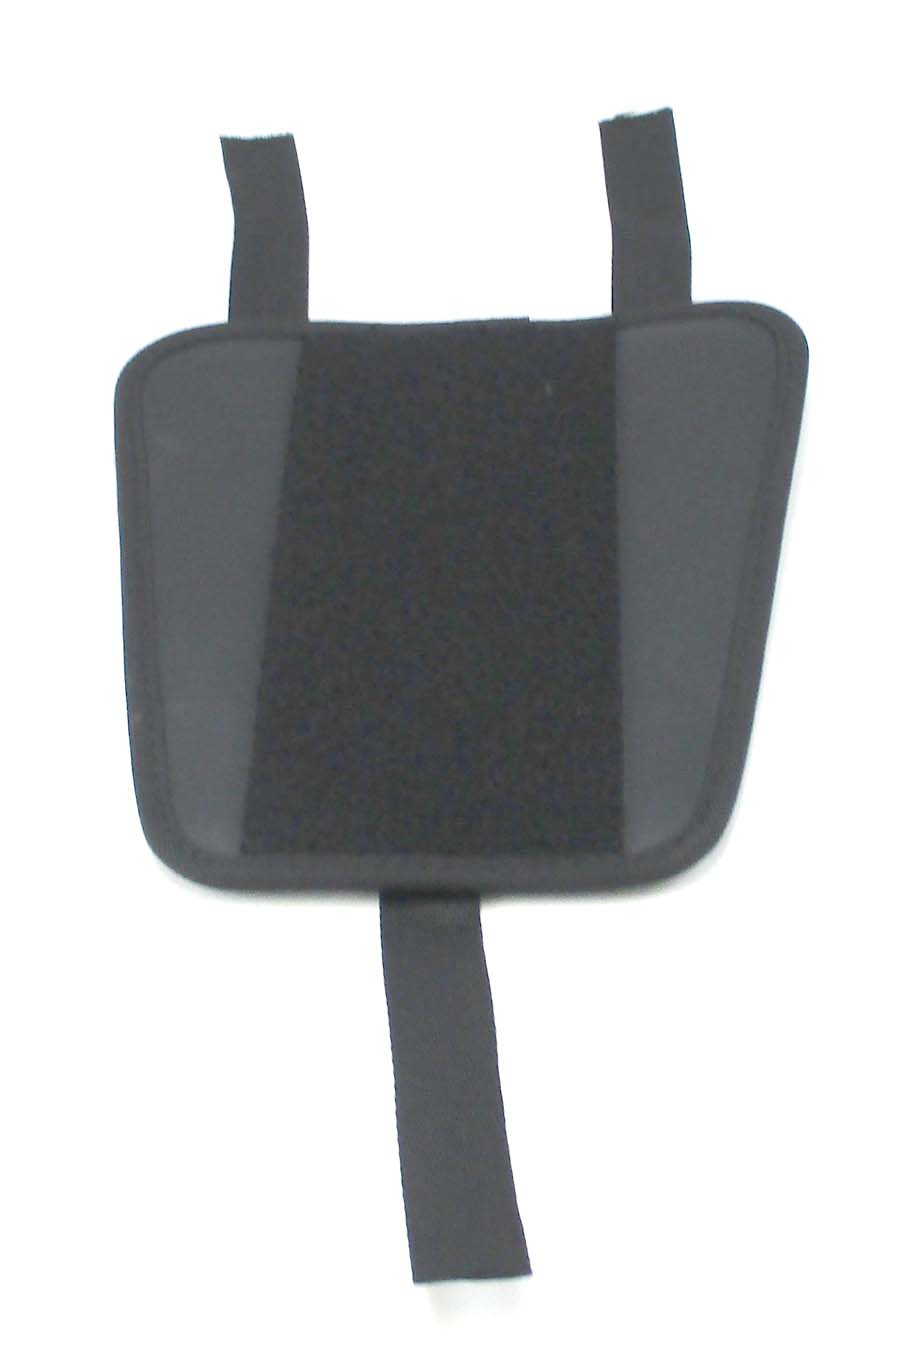 Mounting Pad for Sport Tunnel Bags (12190)